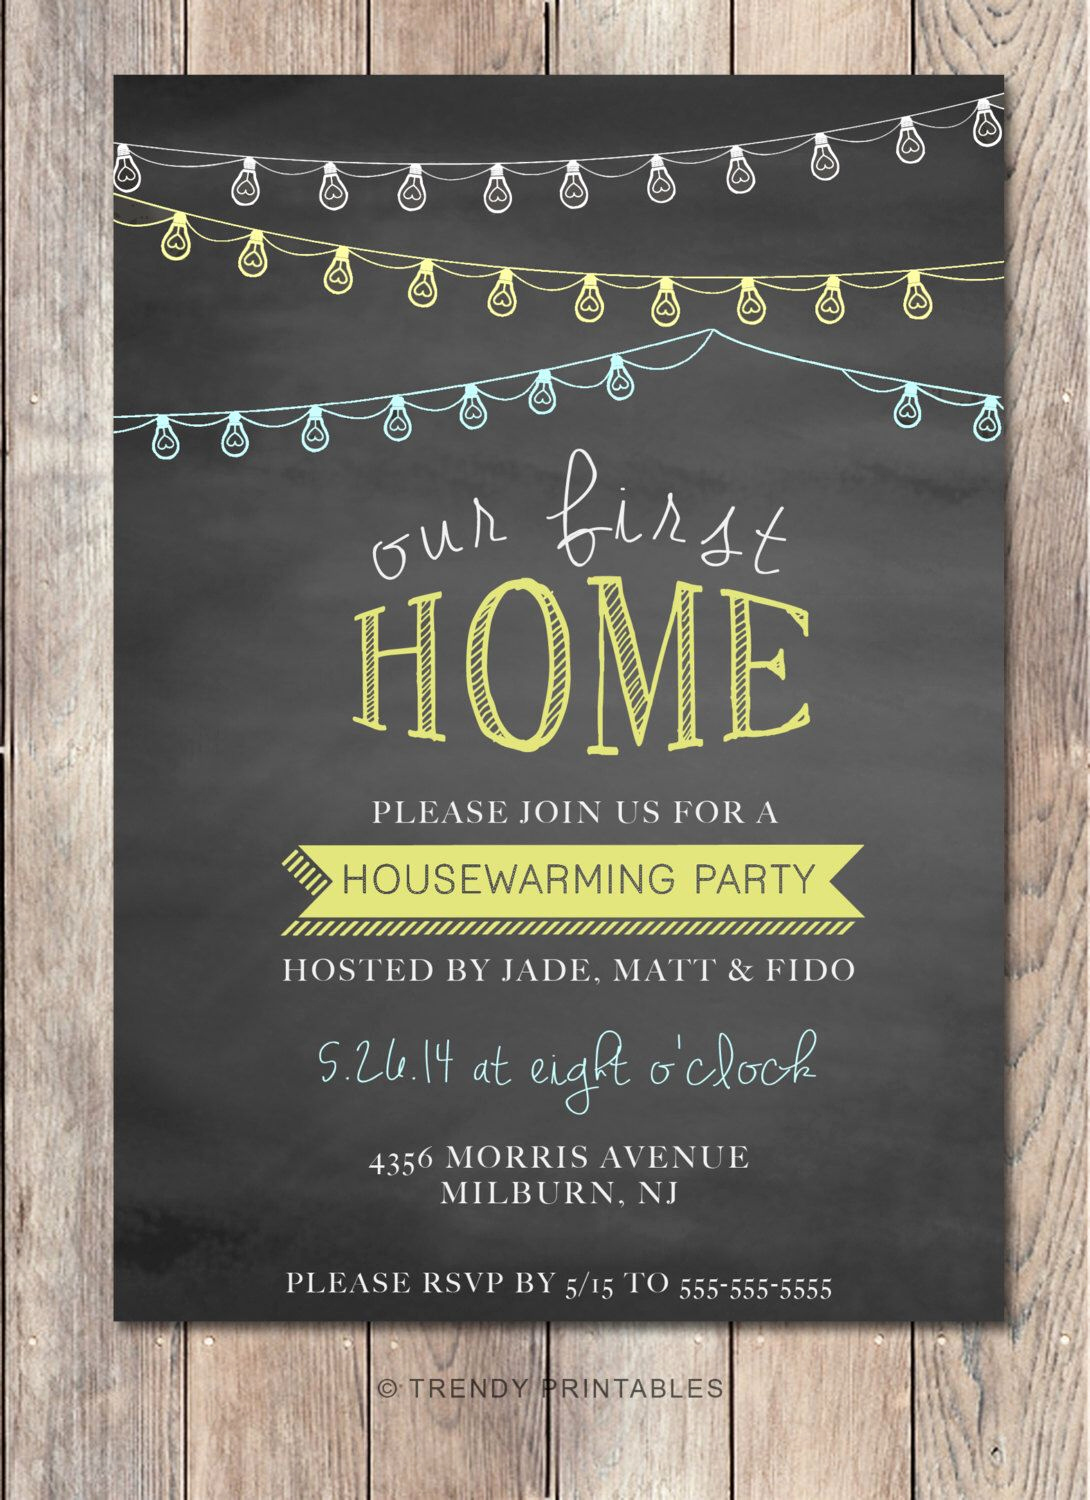 Welcome Party Invitation Wording Awesome Housewarming Party Invitation Housewarming Invitation